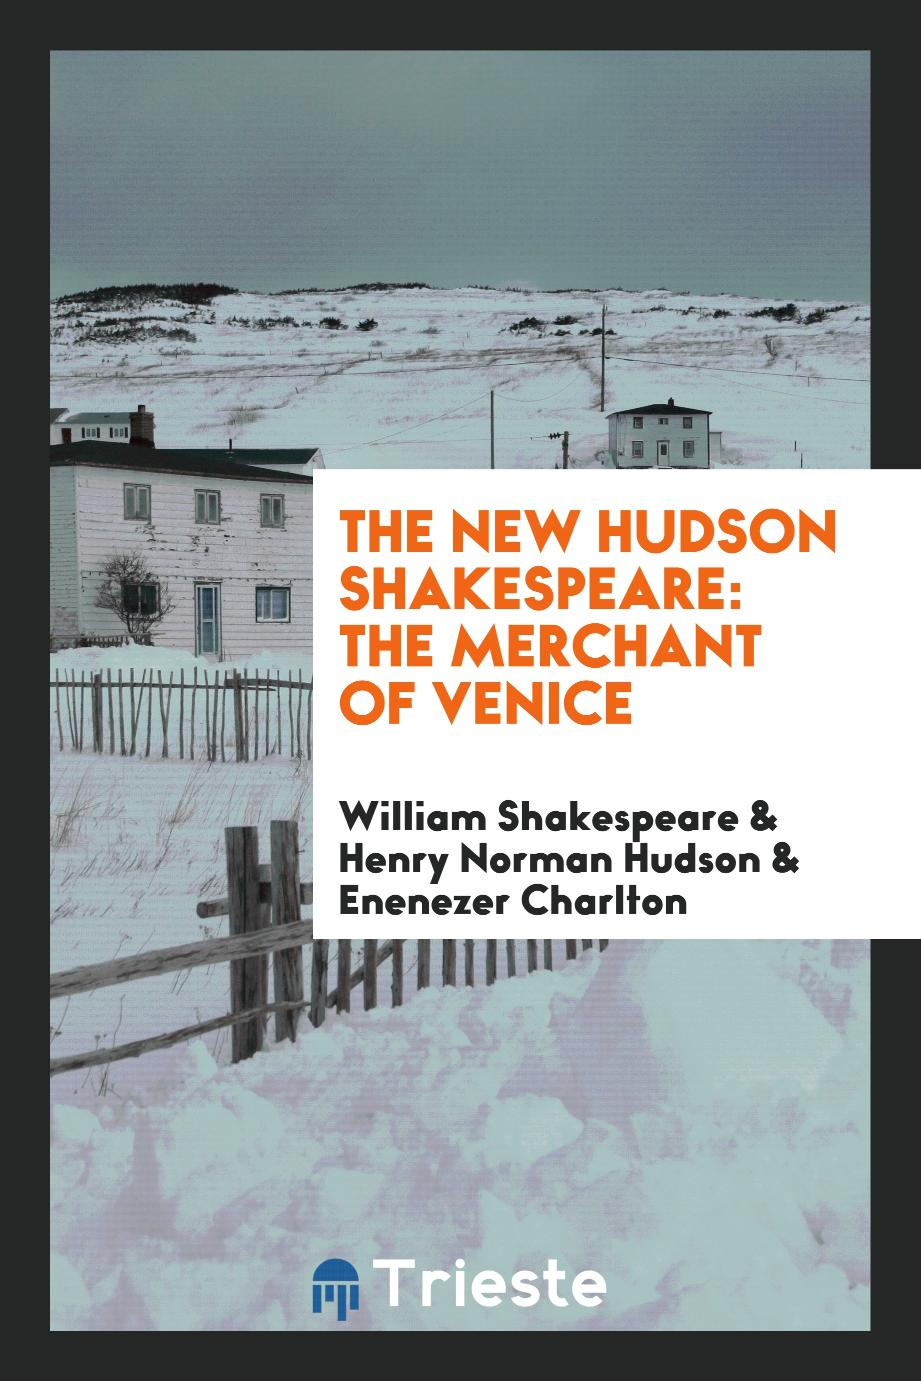 The New Hudson Shakespeare: The Merchant of Venice